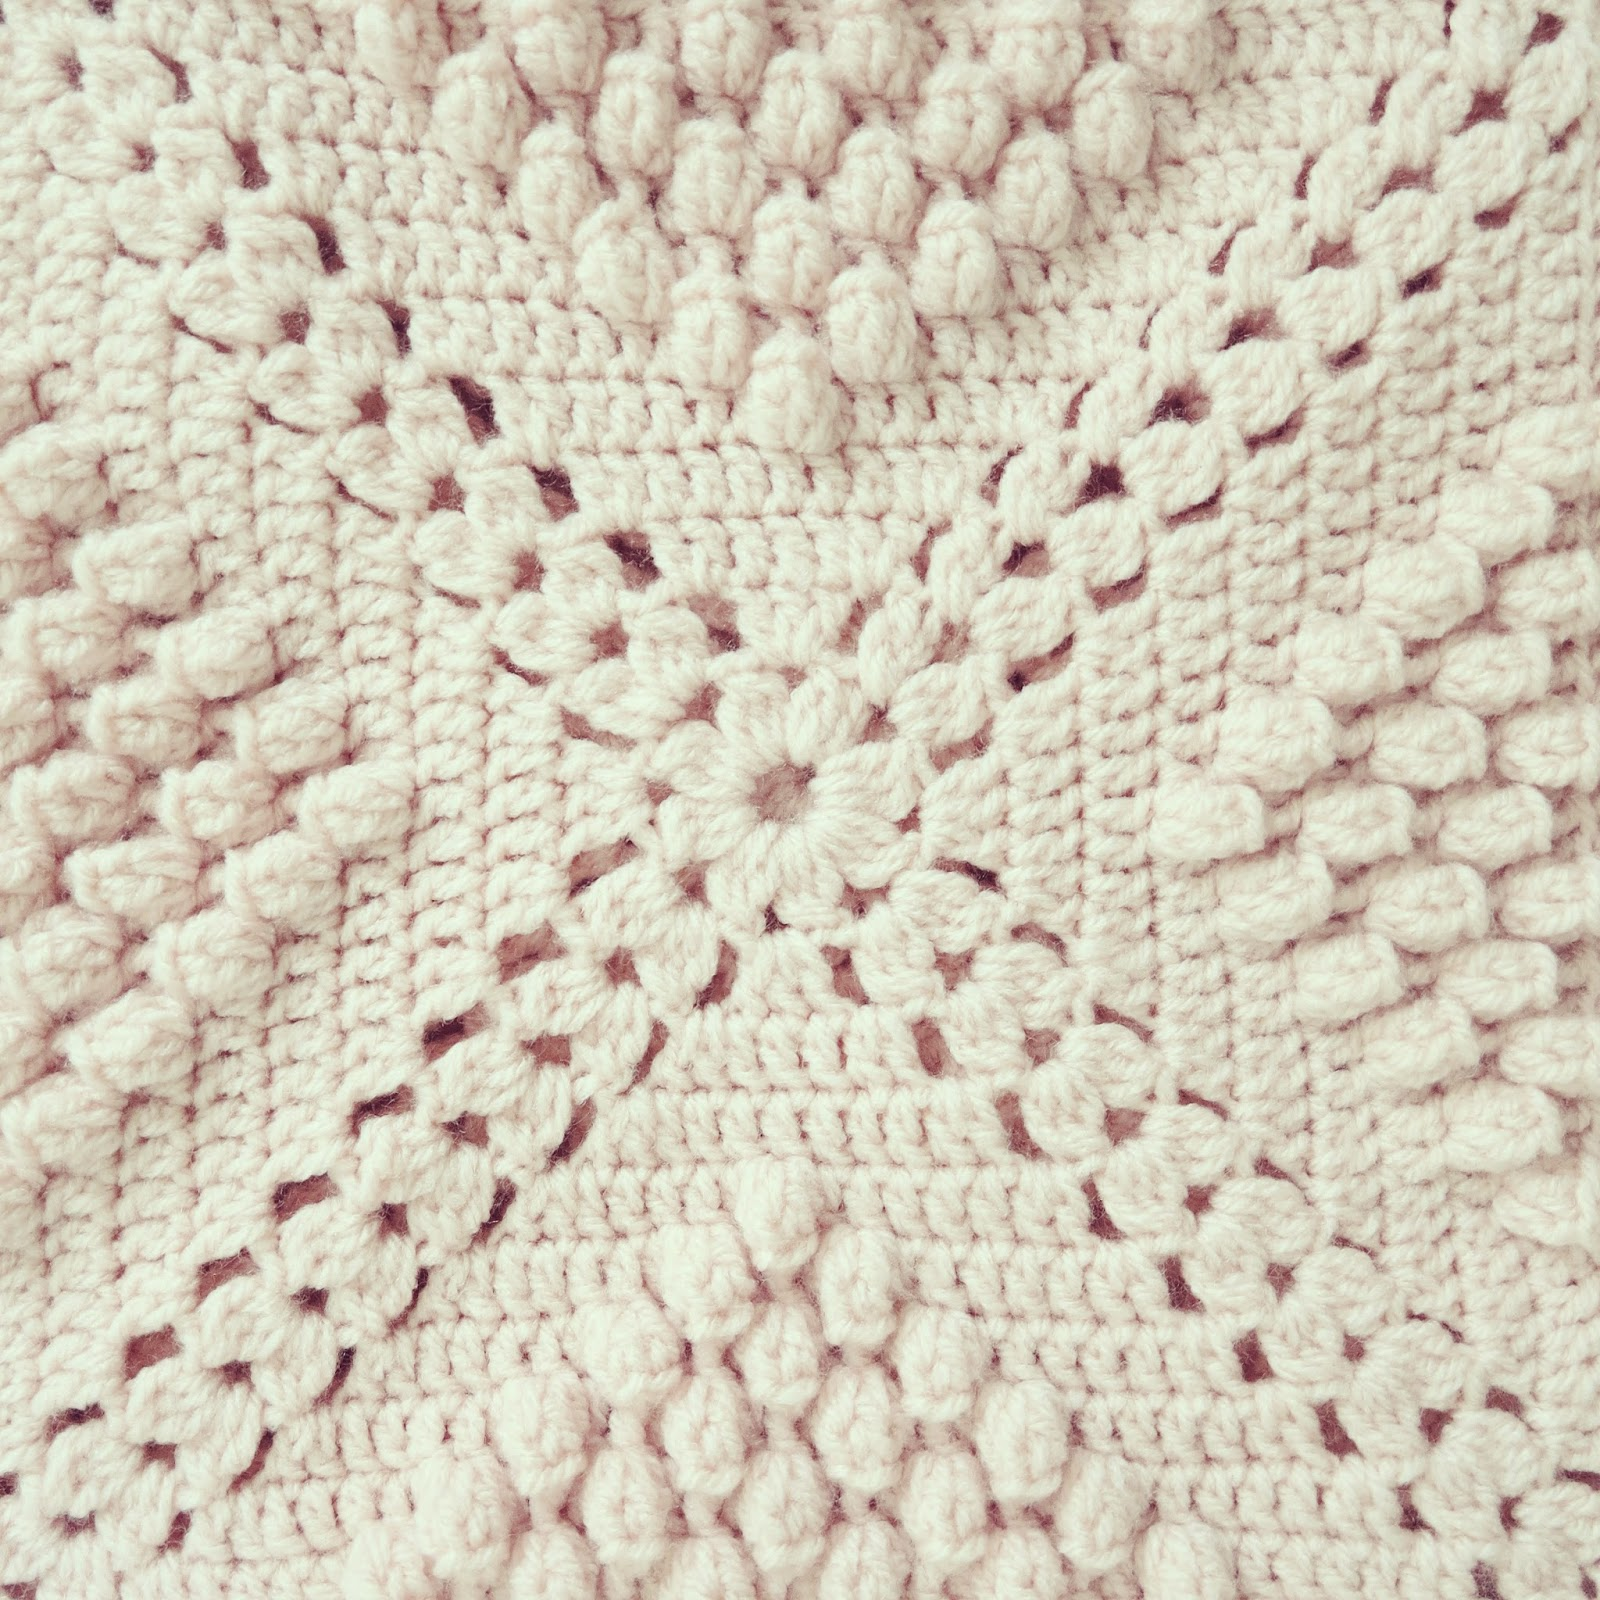 ... crochet, popcorn, bobble stitch throw, blanket, powder pink, pattern